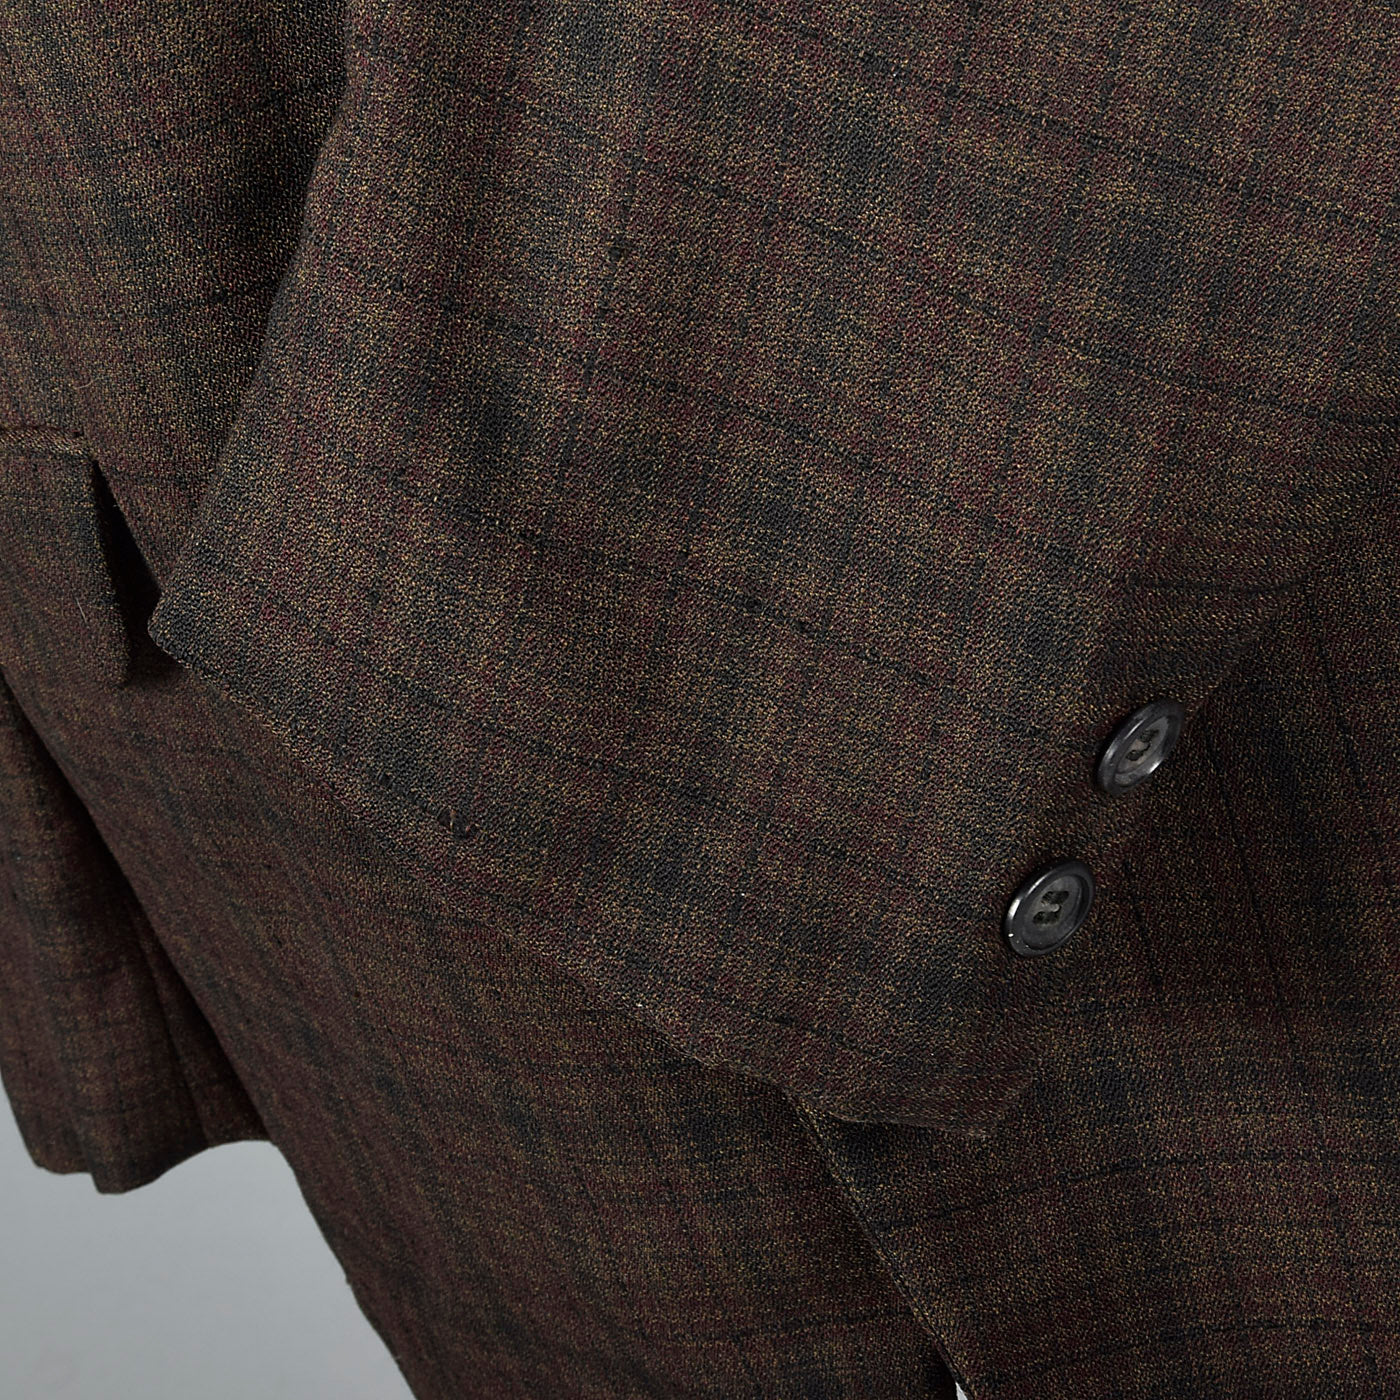 1950s Mens Lightweight Summer Jacket in Brown Plaid